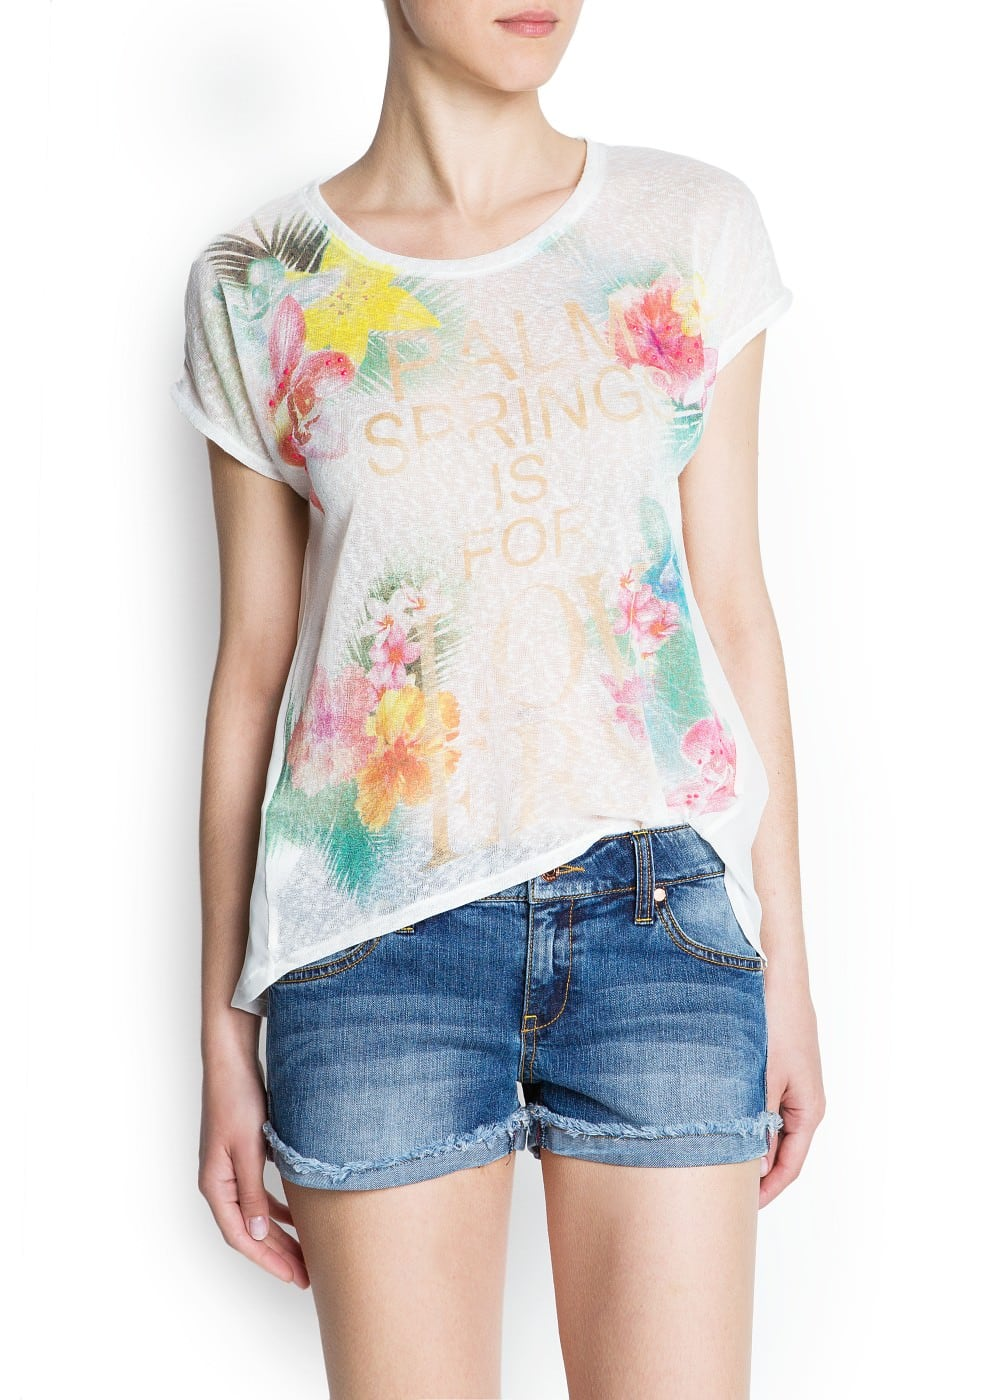 Neon strass floral t-shirt